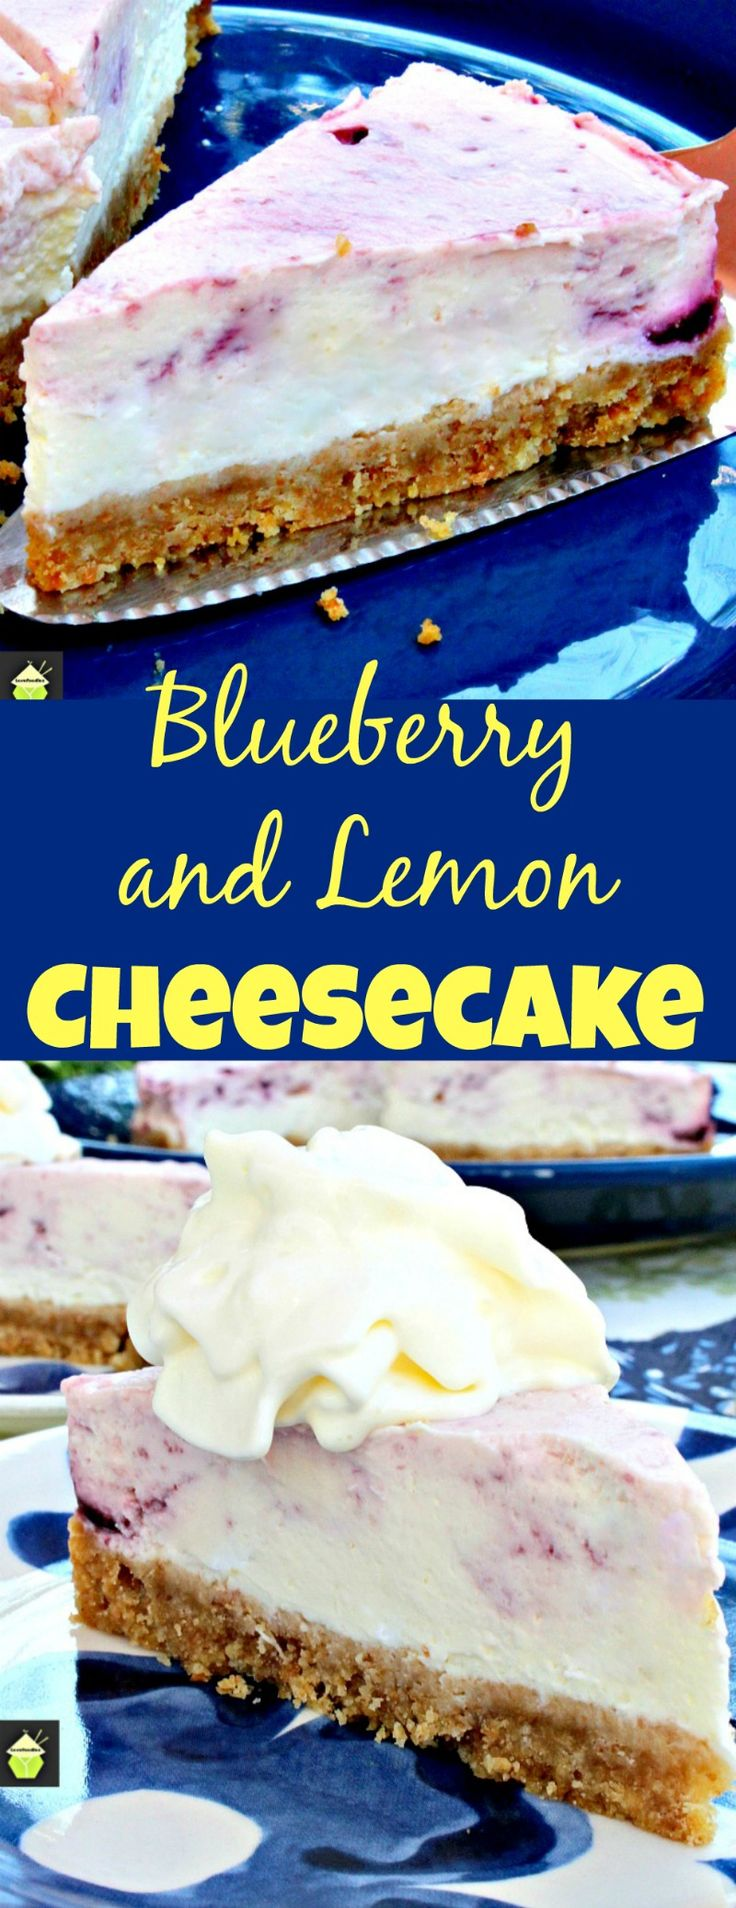 Blueberry and Lemon Cheesecake, A delicious VERY EASY No Bake dessert with a lovely flavor combination.